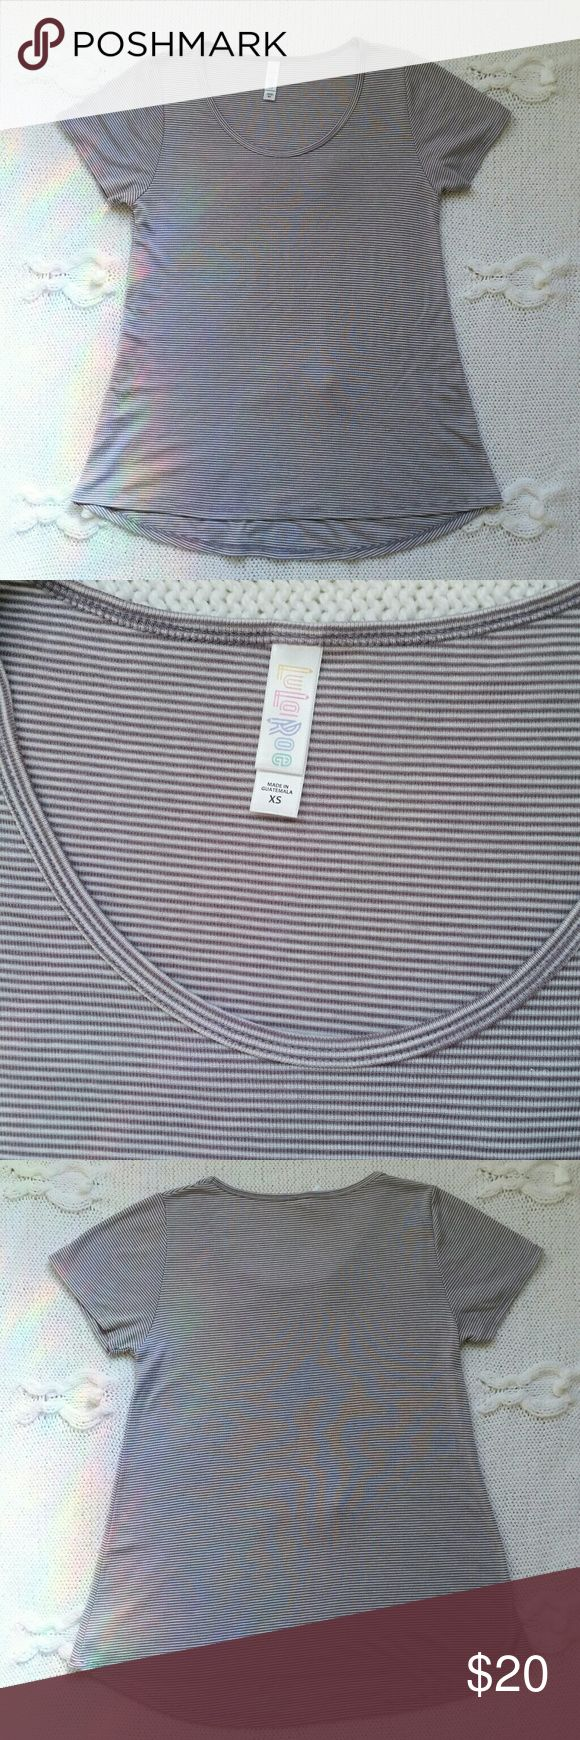 "{LuLaRoe} pinstripe classic tee, sz XS Classic tee of a great neutral color that will go well with many outfits. Off-white and light purple pinstripe (some may see the purple as grey). Poly-rayon blend, very soft and non-sheer fabric. Worn and washed once, absolutely excellent condition, like new! No pilling, no stains or holes.  Size XS but will fit S loosely. Check with the measurements before purchase: bust is 17"" across flat lay, length is 25"" on front and 26.5"" on the back.  Price is…"